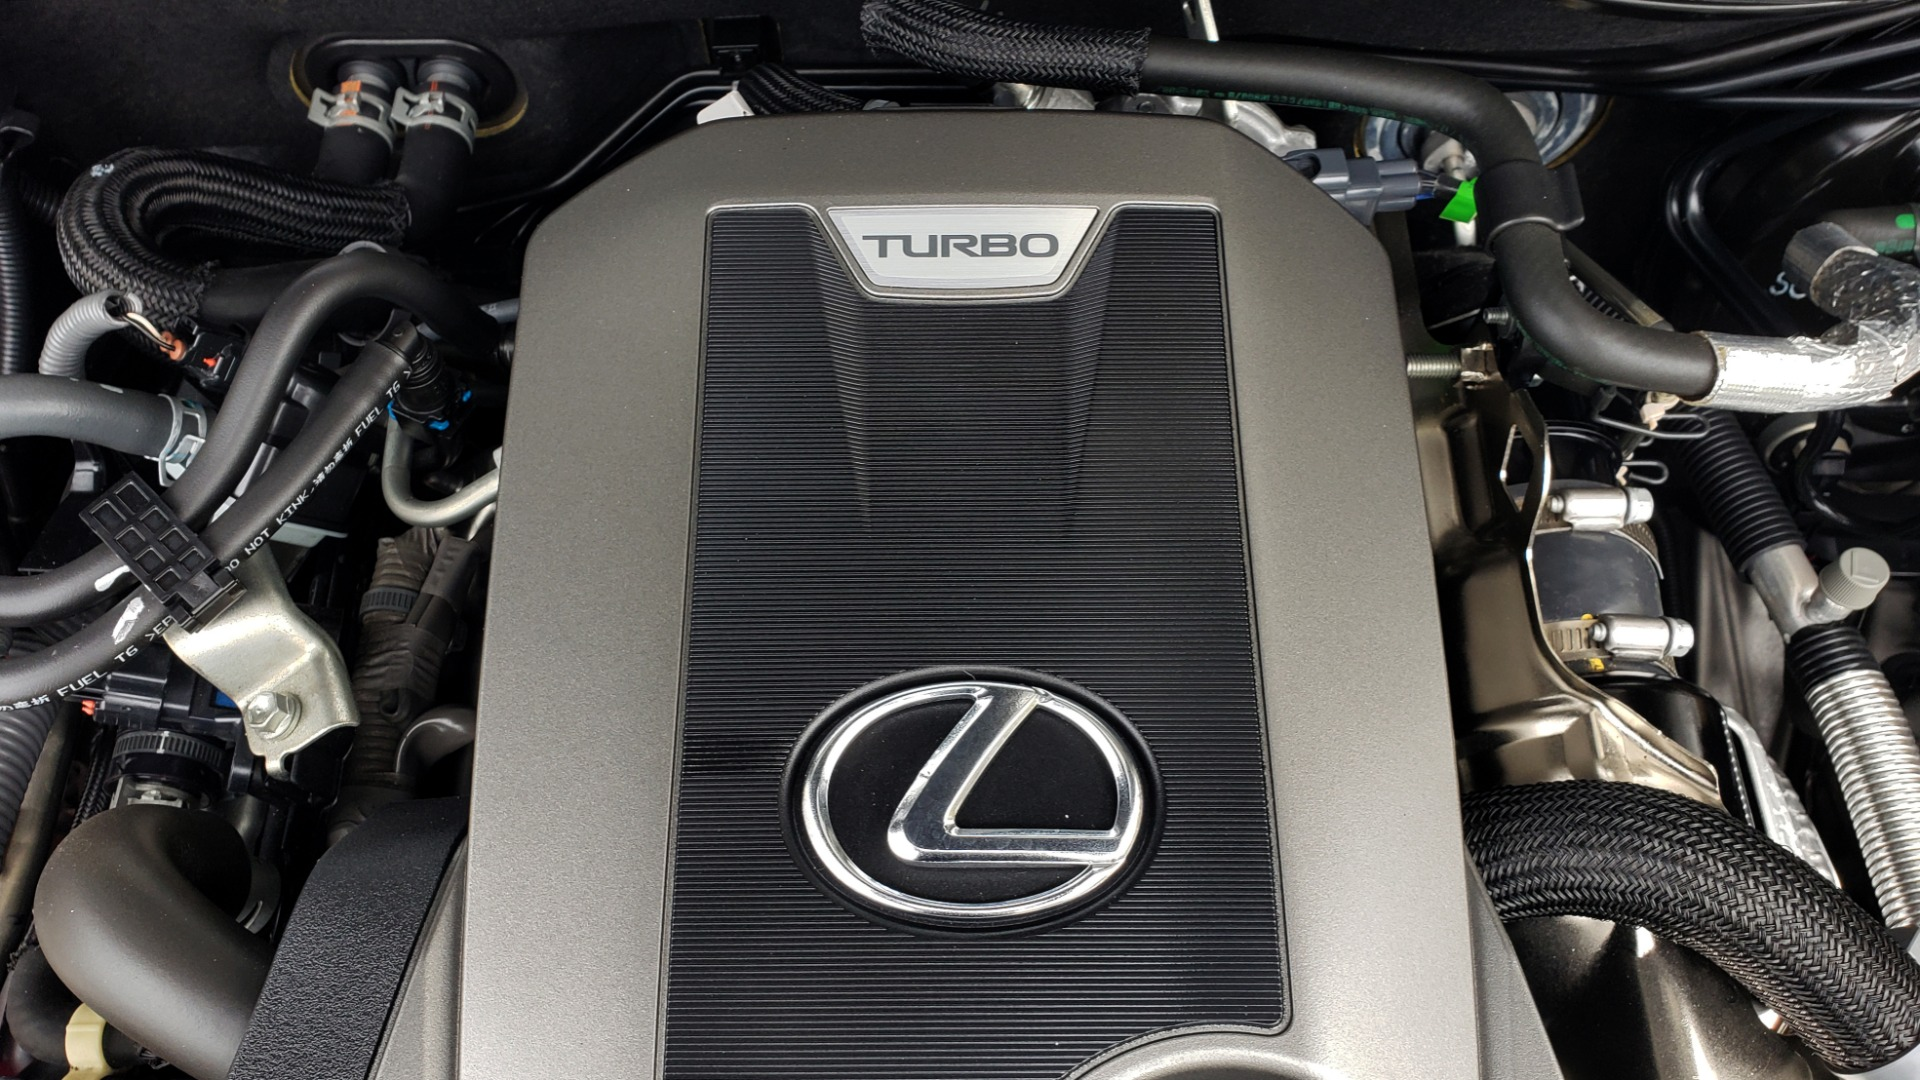 Used 2017 Lexus IS 200 TURBO F-SPORT / BSM / SUNROOF / VENT SEATS / REARVIEW for sale Sold at Formula Imports in Charlotte NC 28227 17